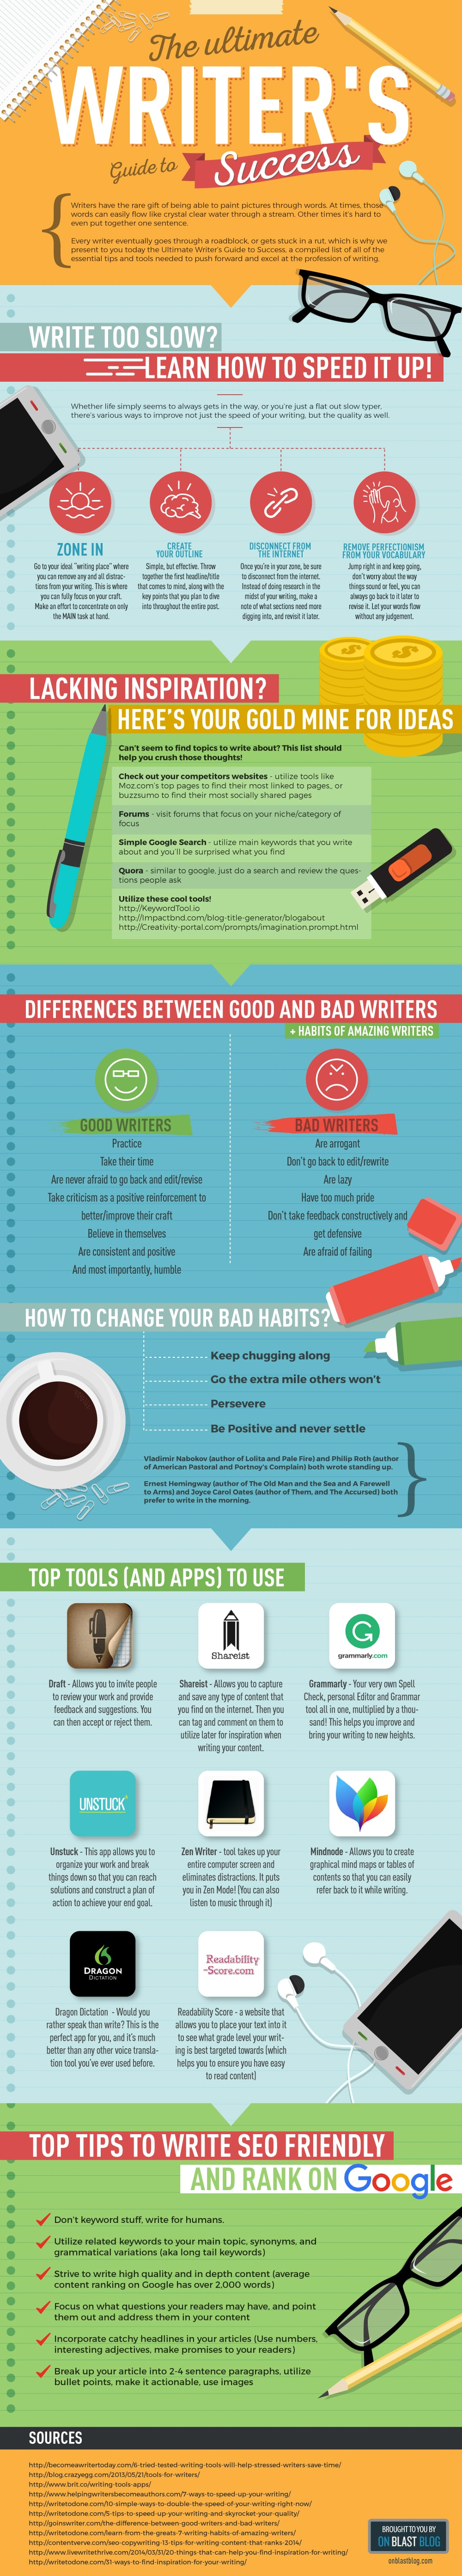 Writing Habits for Success Infographic